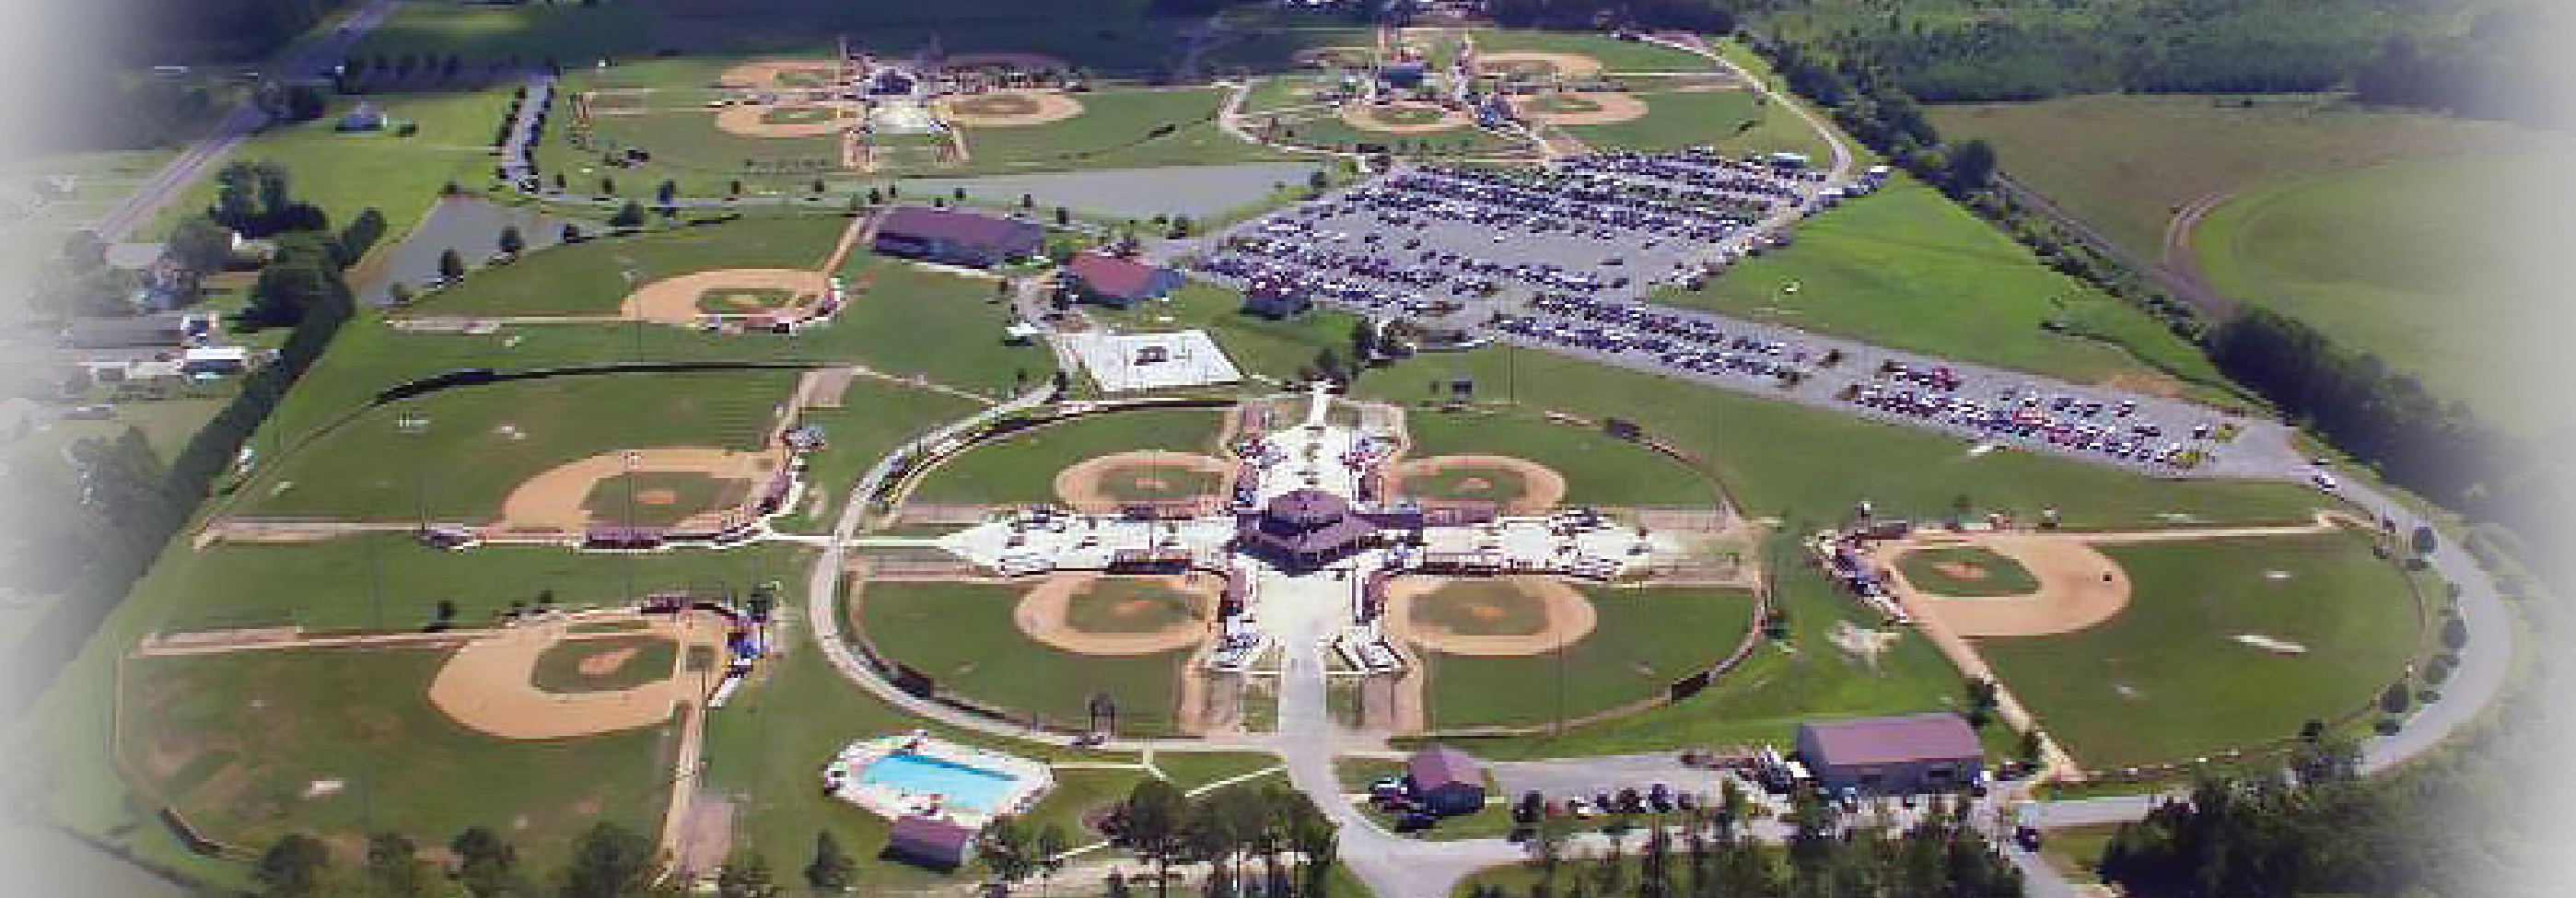 Original construction of our youth baseball facility occurred over ten years ago and was supervised by Vince Patterozzi of the Baltimore Ravens.